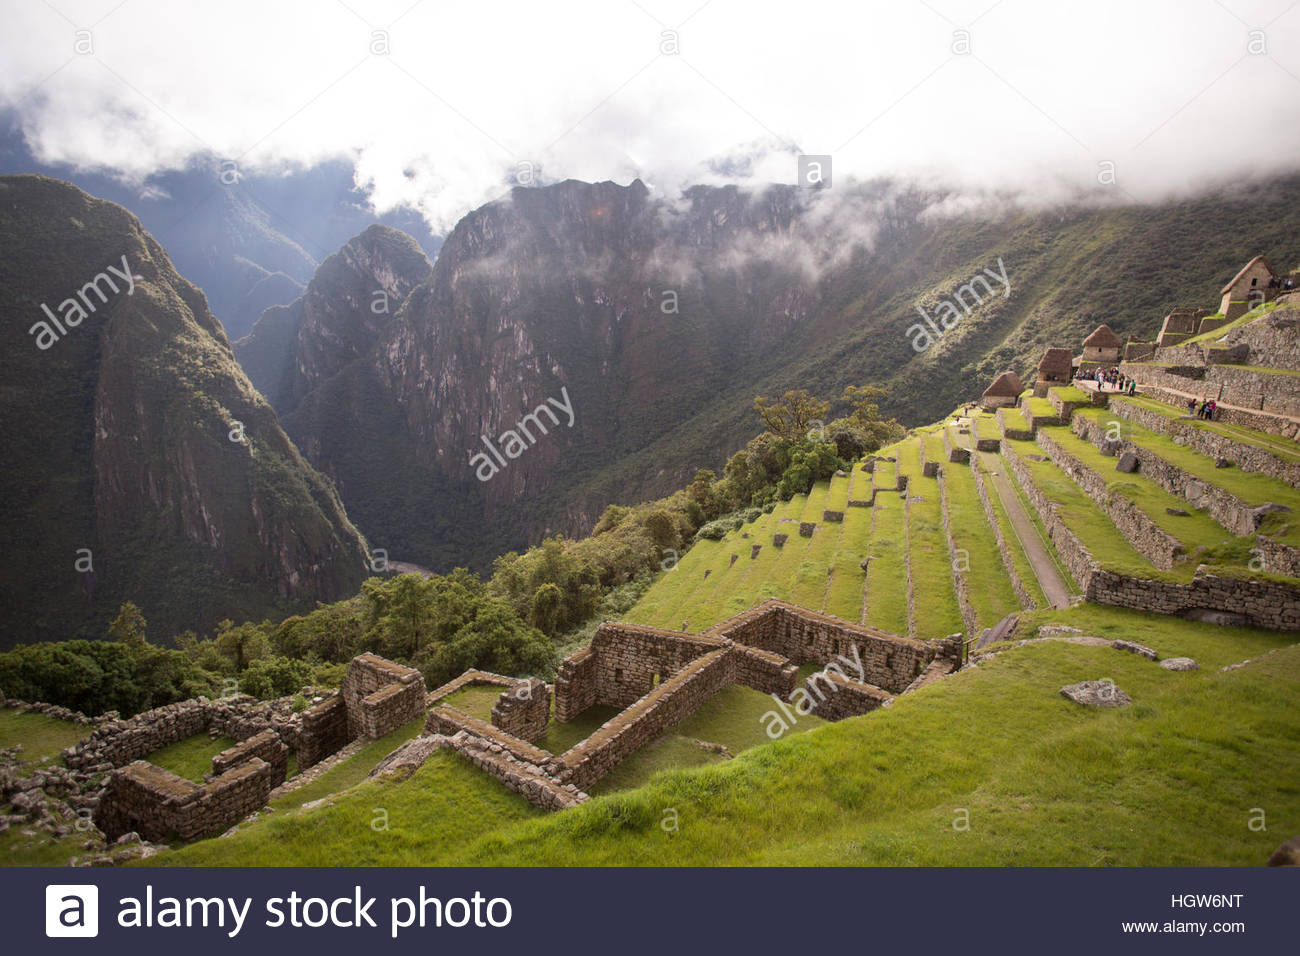 Wide shot of Machu PIcchu, it agricultural terraces, and the surrounding mountains. - Stock Image